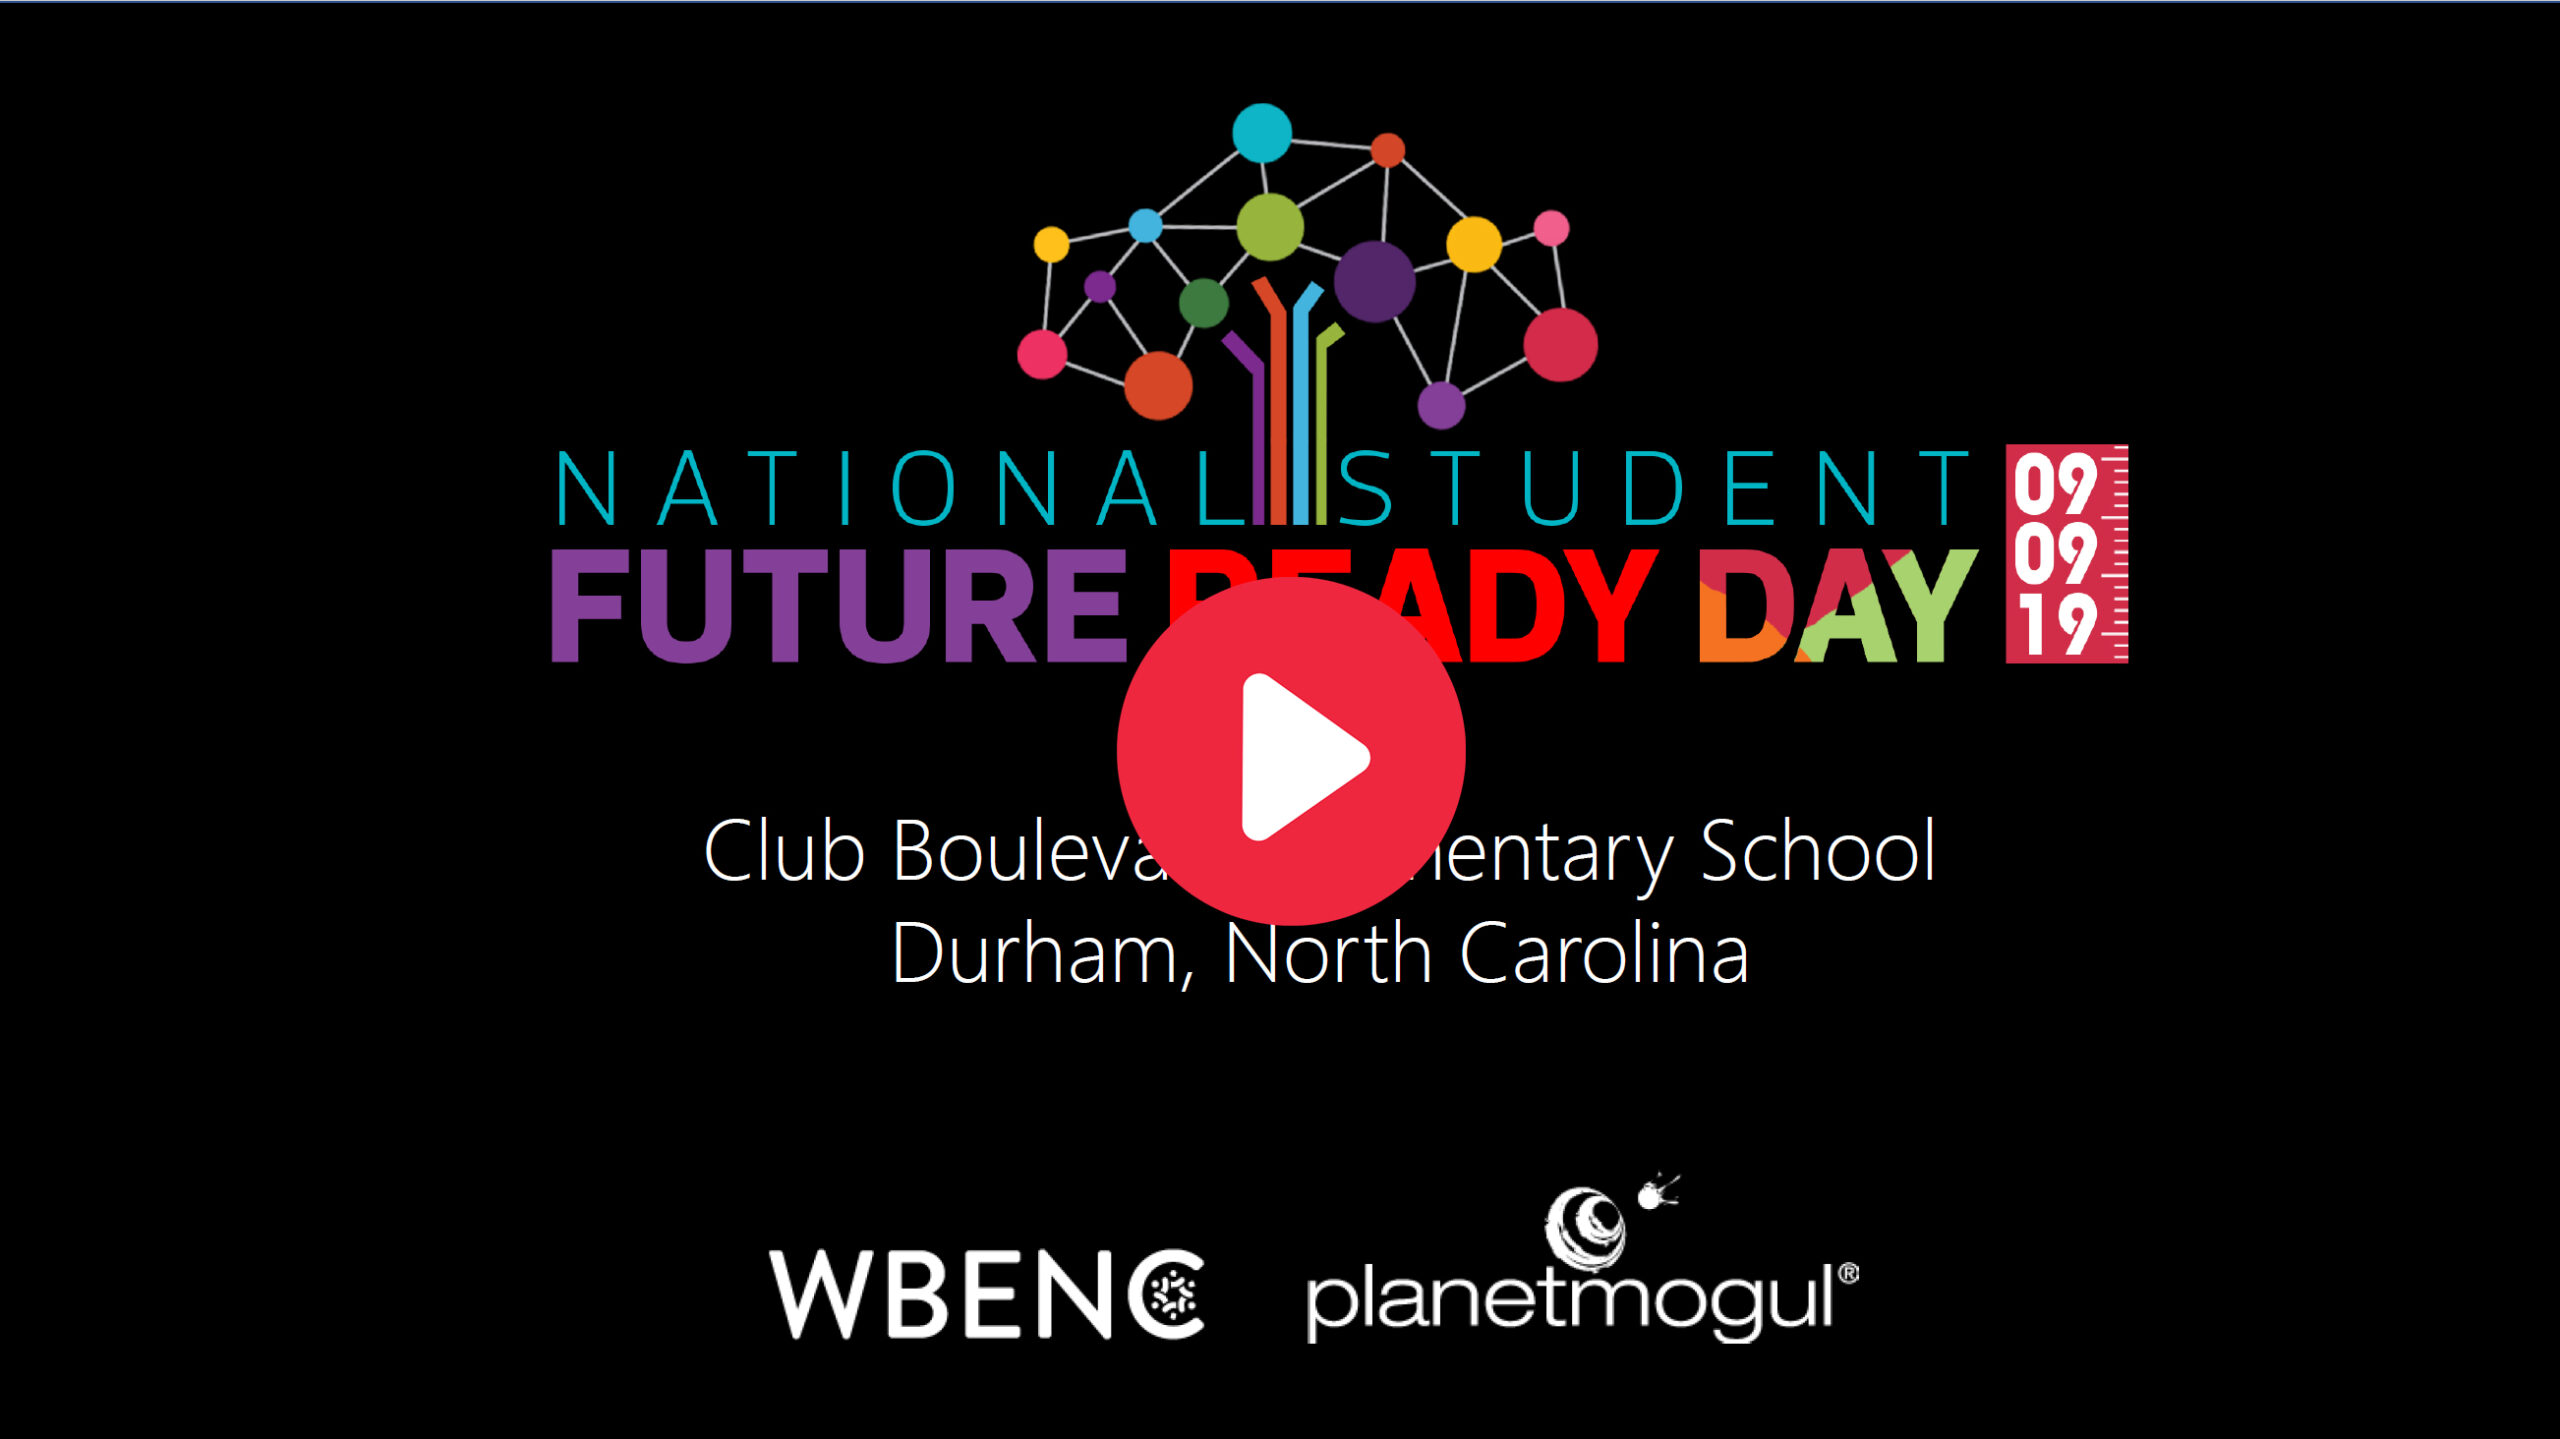 National Student Future Ready Day